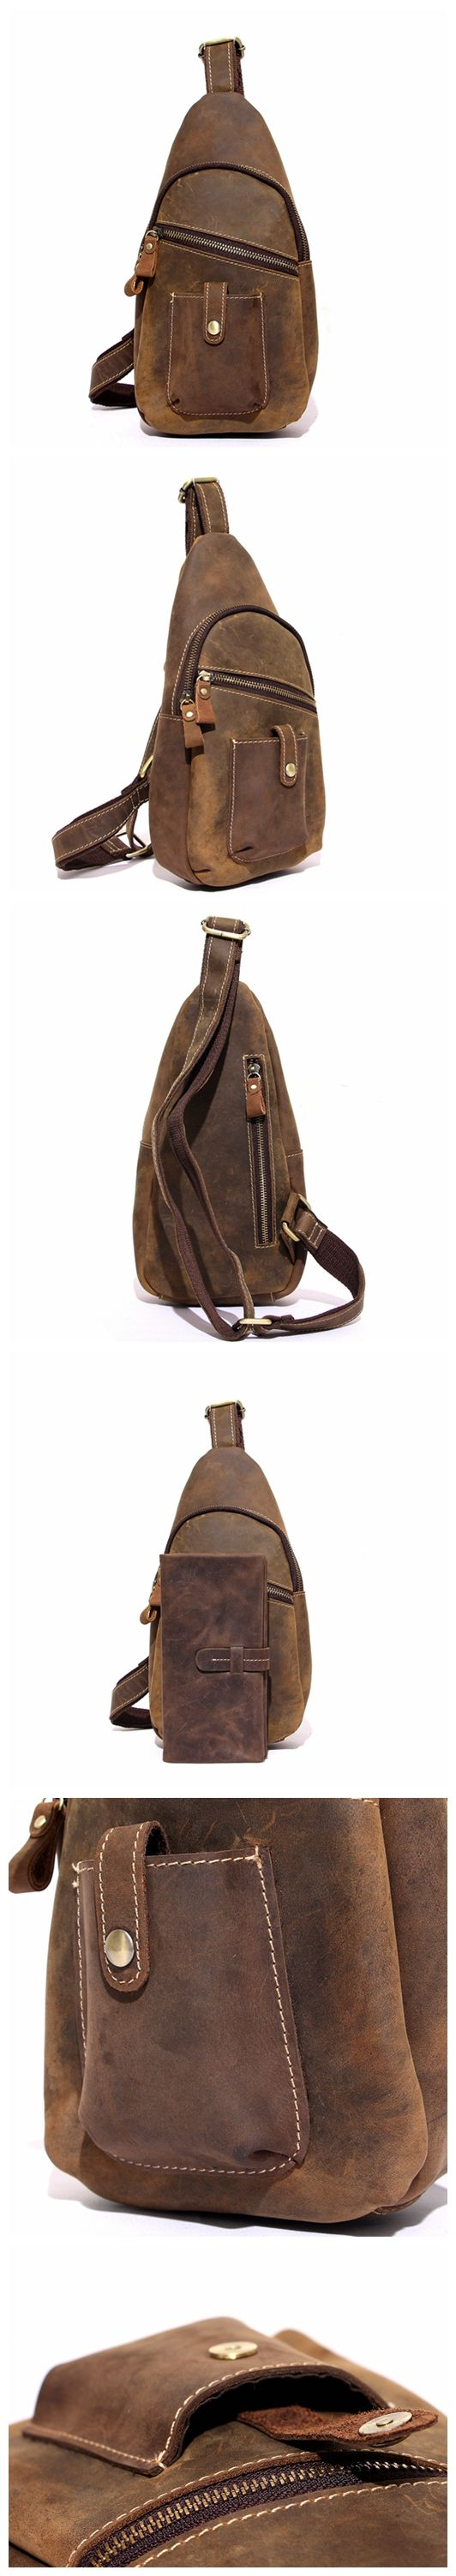 HANDCRAFTED TOP GRAIN LEATHER TRAVEL HIKING SINGLE STRAP SHOULDER BACKPACK SLING BAG